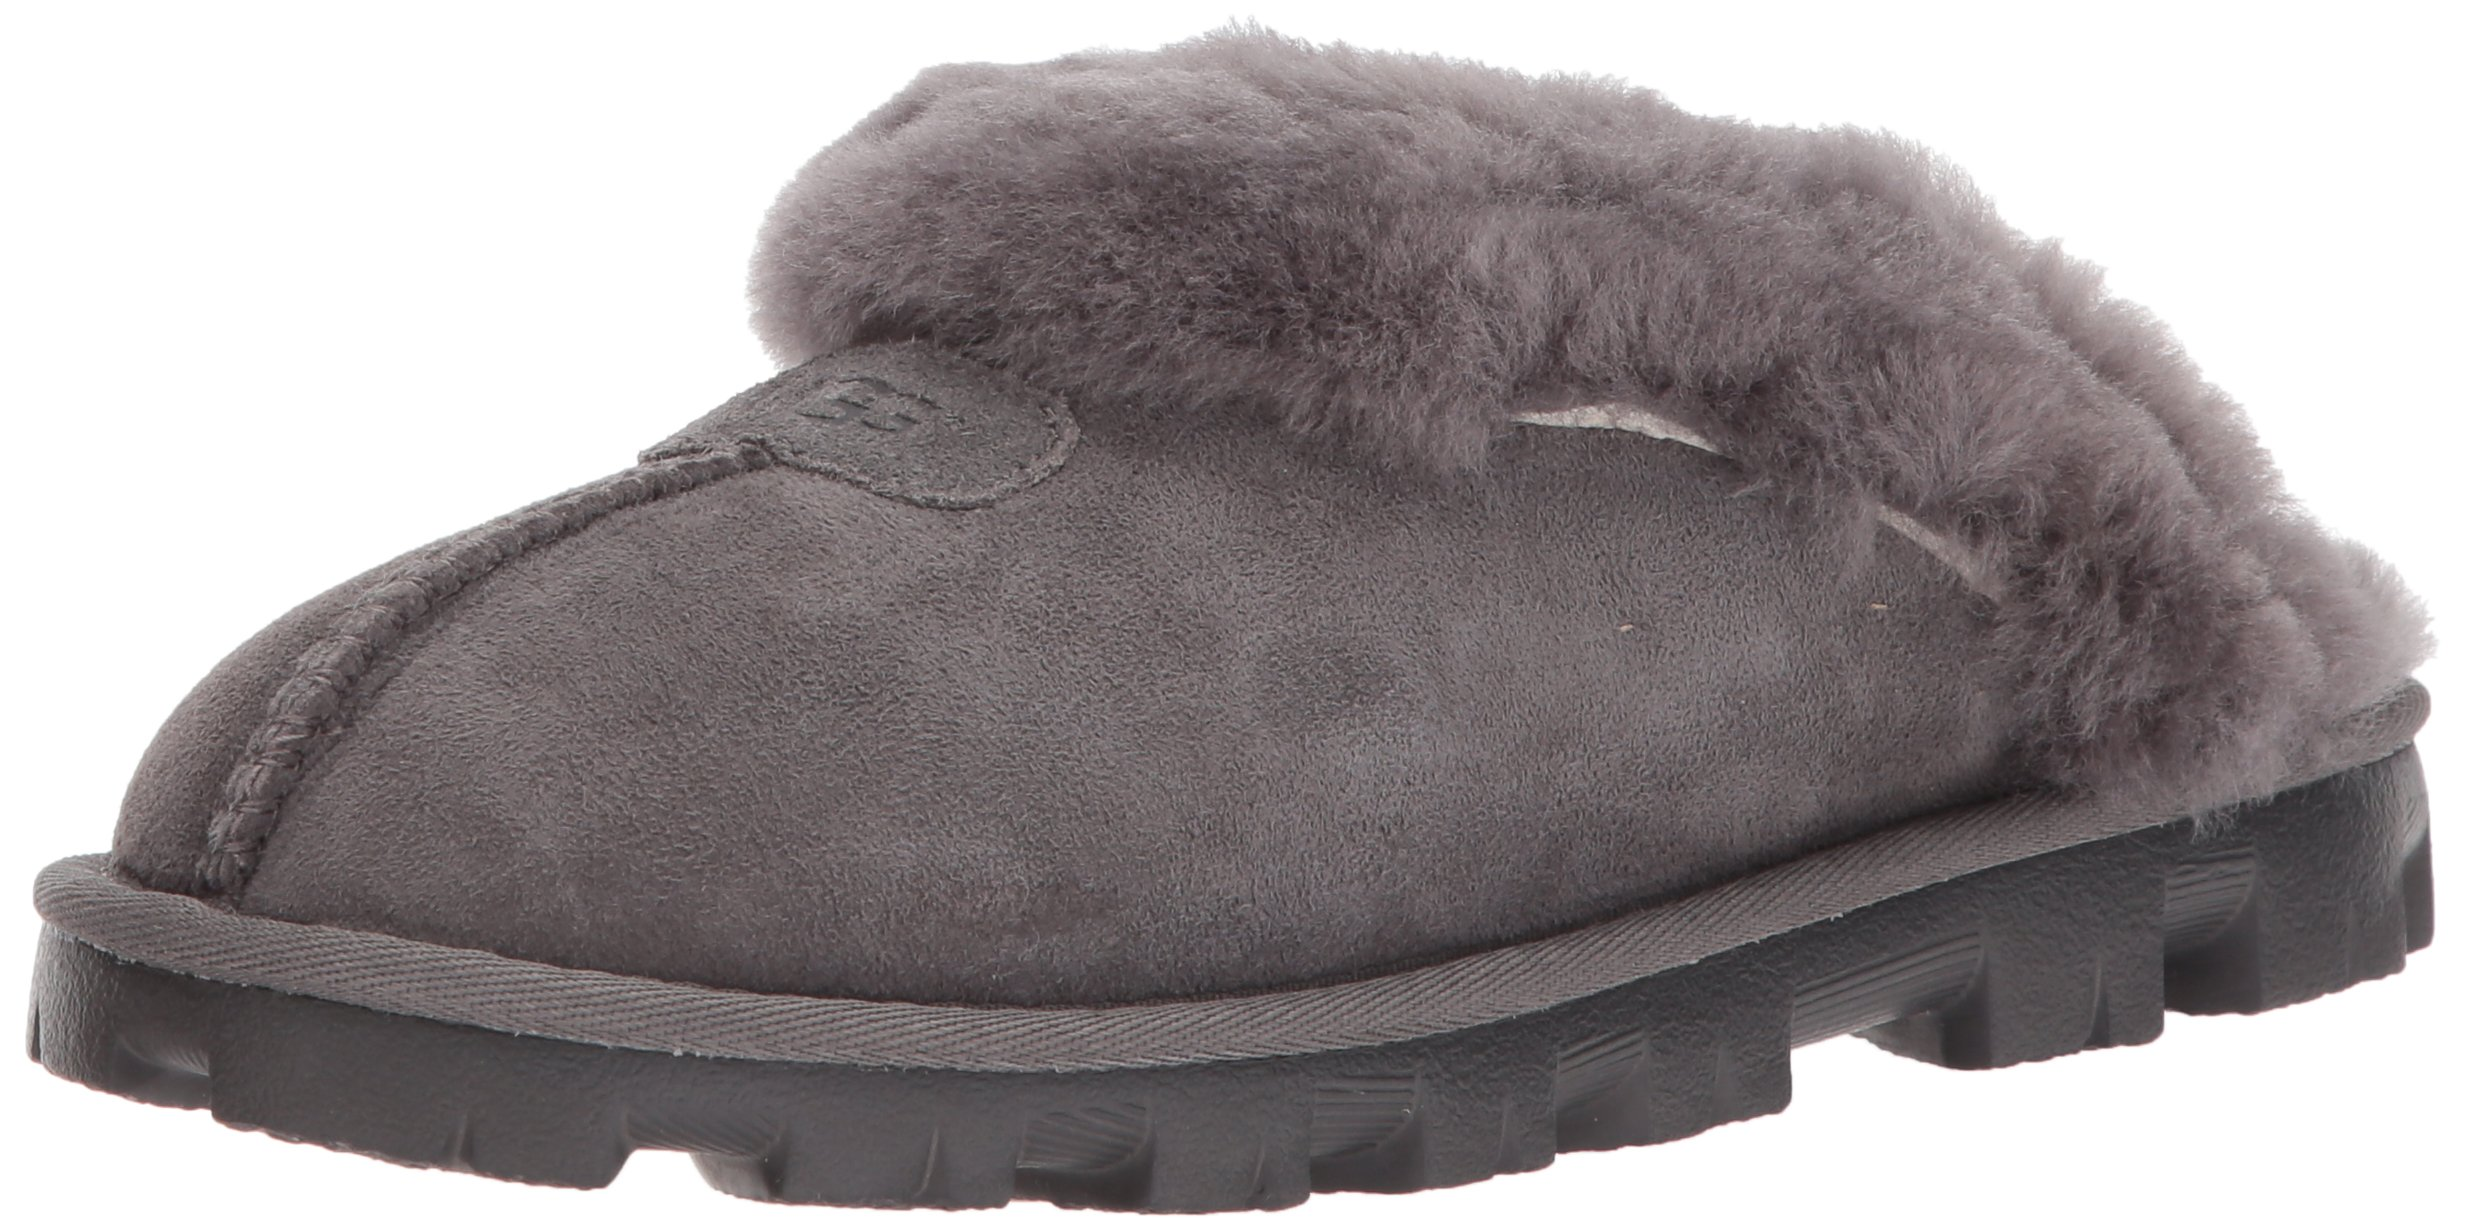 UGG Women's Coquette Grey Slipper - 9 B(M) US